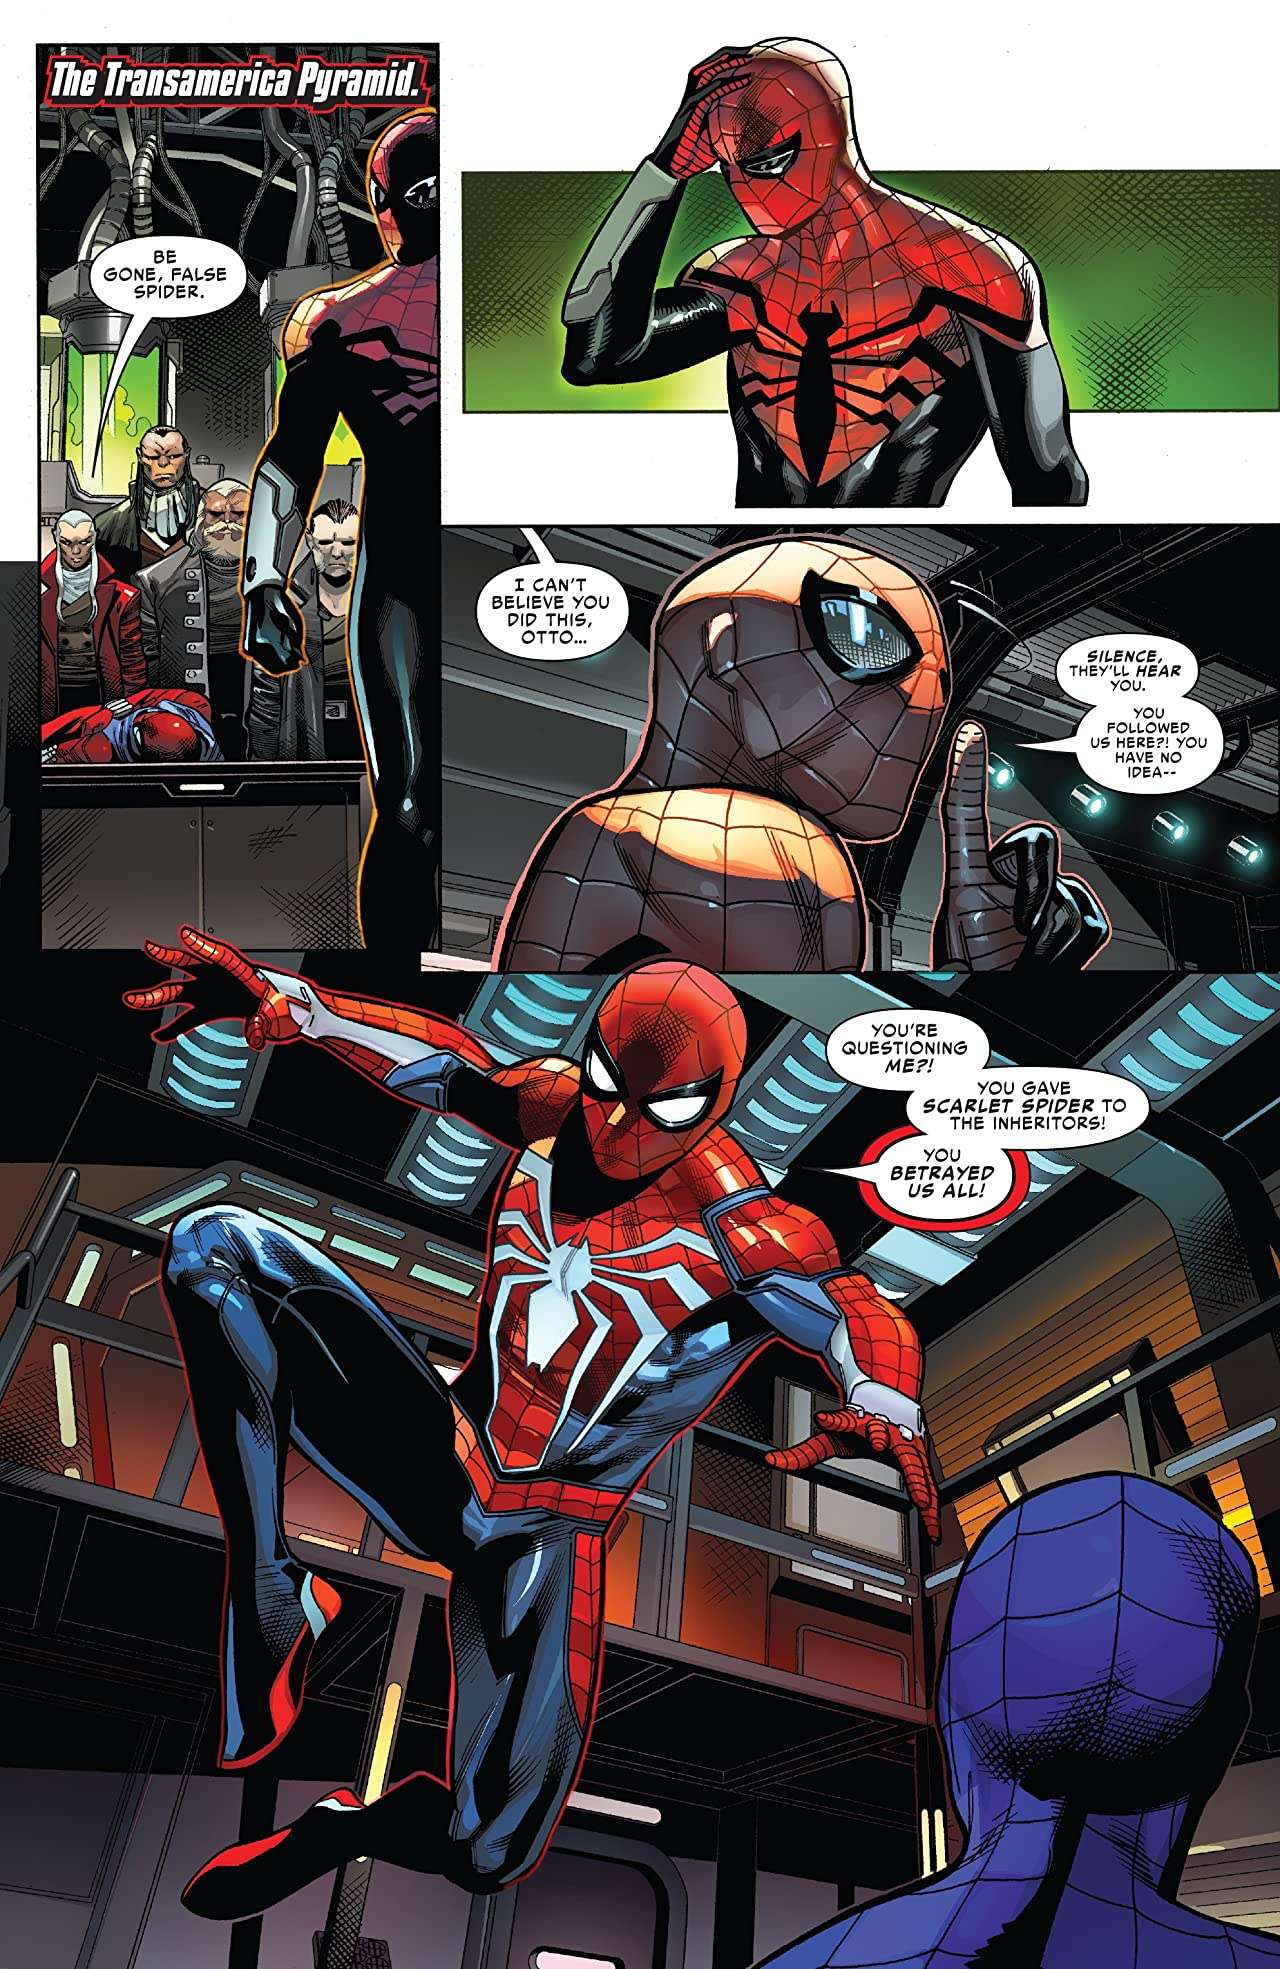 Spider-Geddon (2018) #5 (of 5)